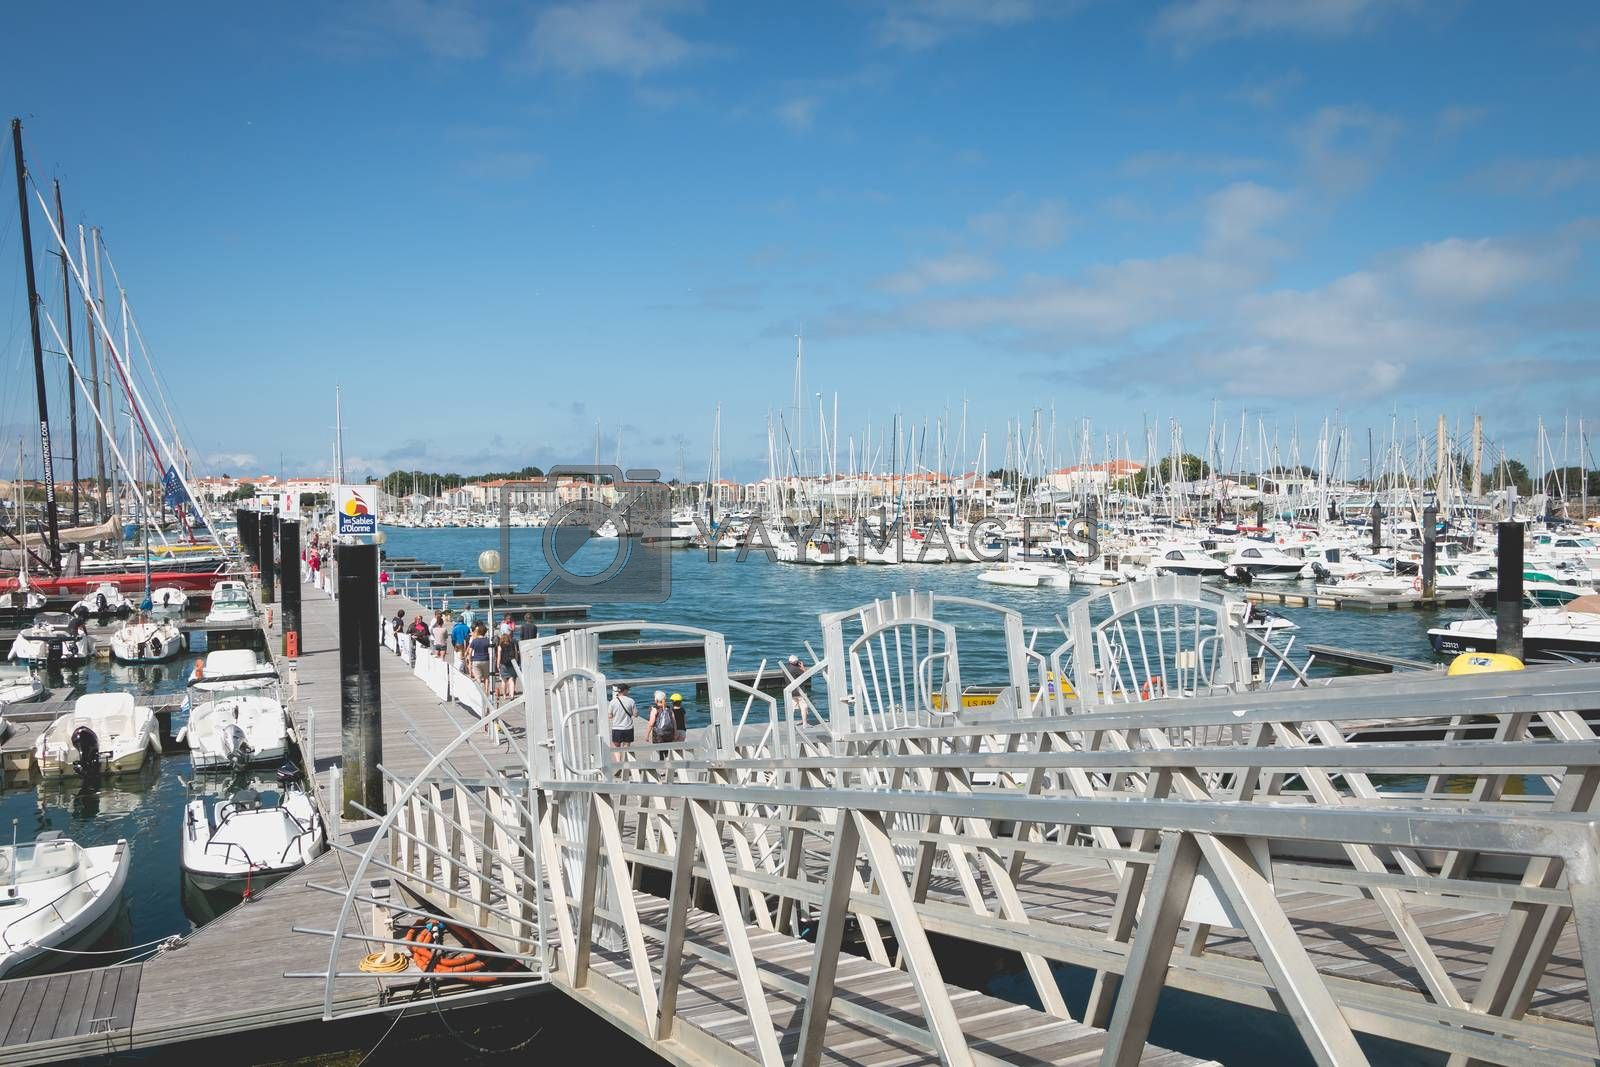 SABLES D OLONNE, FRANCE - July 24, 2016 : entrance to the marina where people are walking on the pontoons to watch the boats